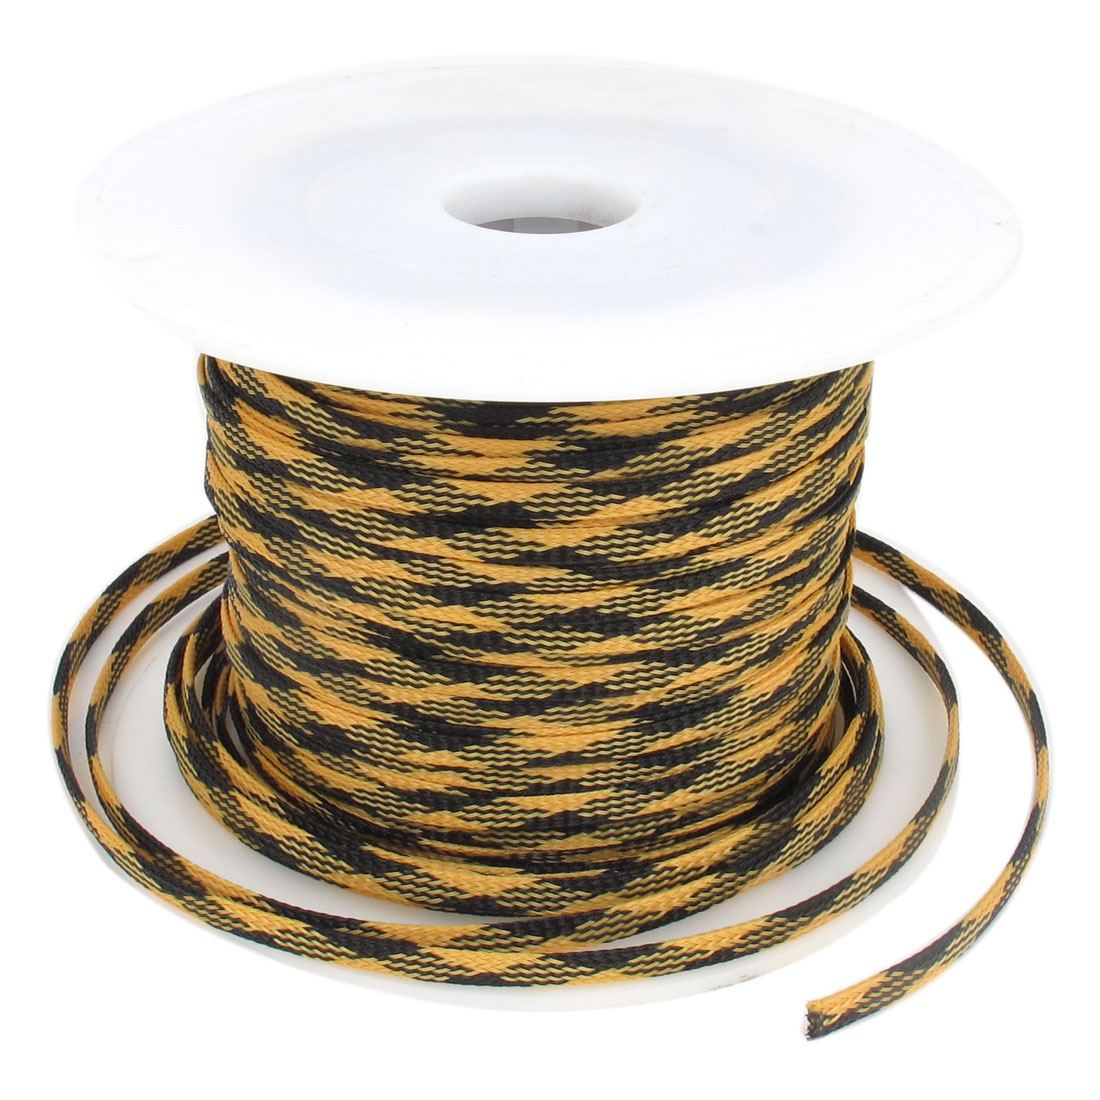 5mm x 100m Black Yellow Expandable Braided Dense PET Cable Sleeve